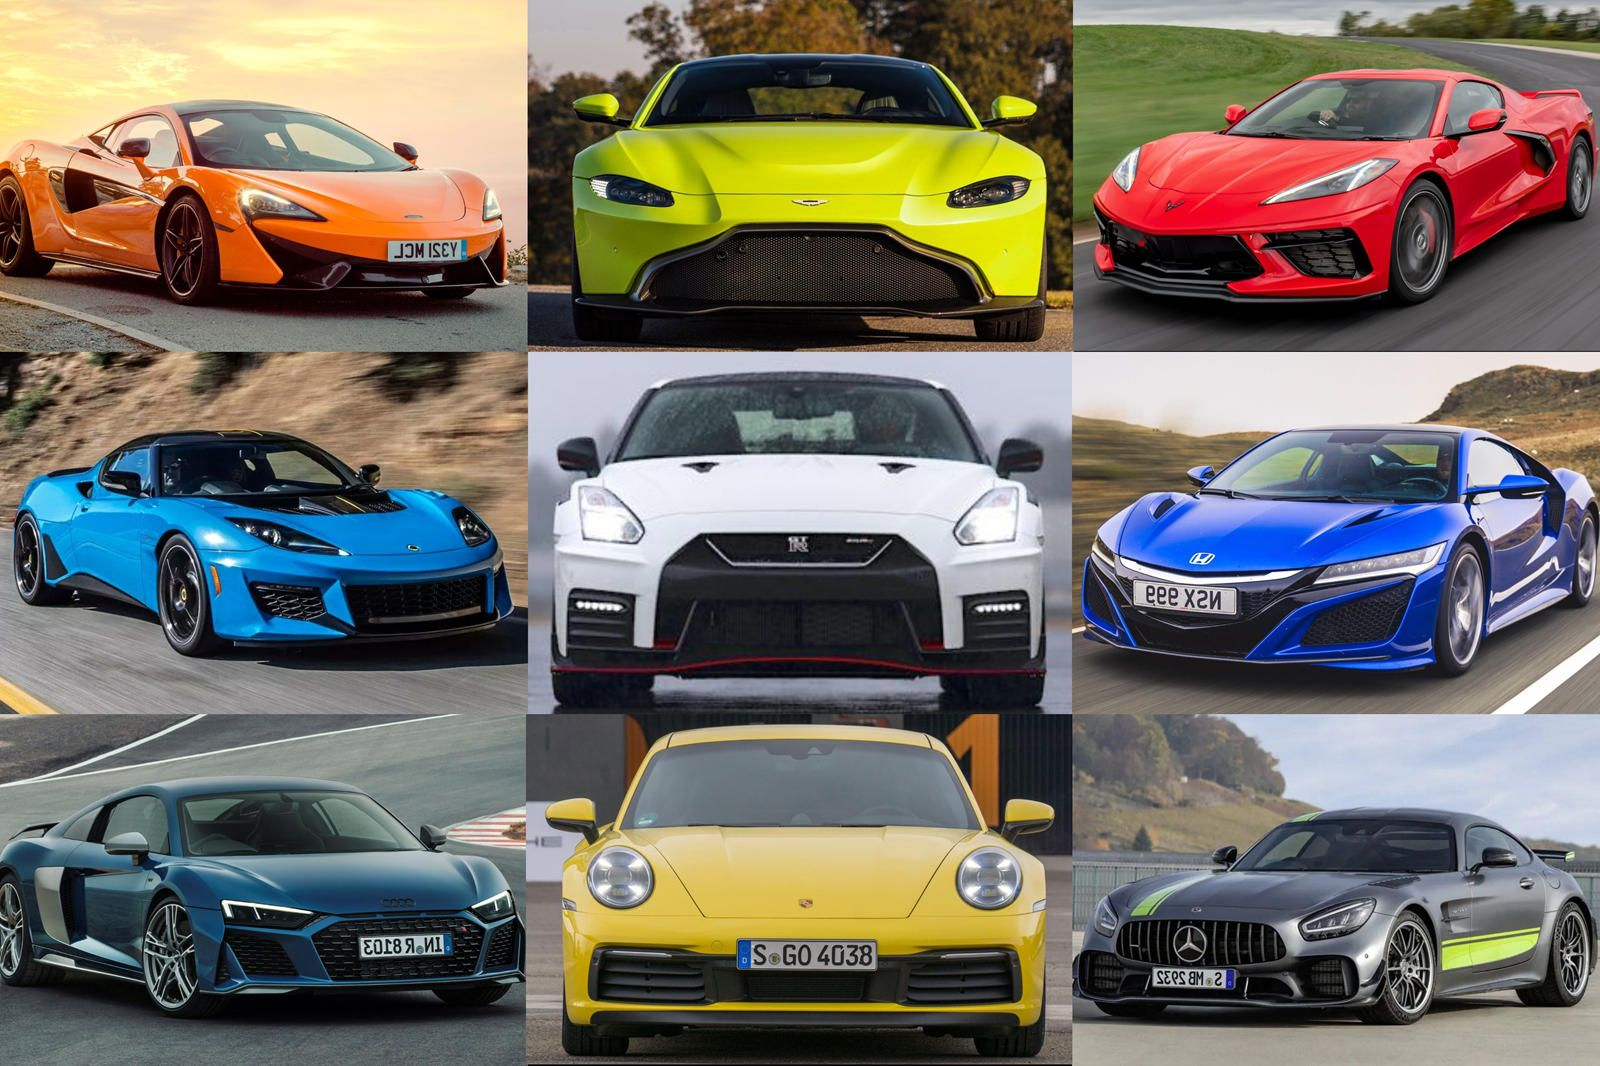 The Best Entry Level Supercars For 2020 Performance Style And Emotion These Are The Best Of The Best For Under 200 In 2021 Super Cars Super Sport Cars Entry Level